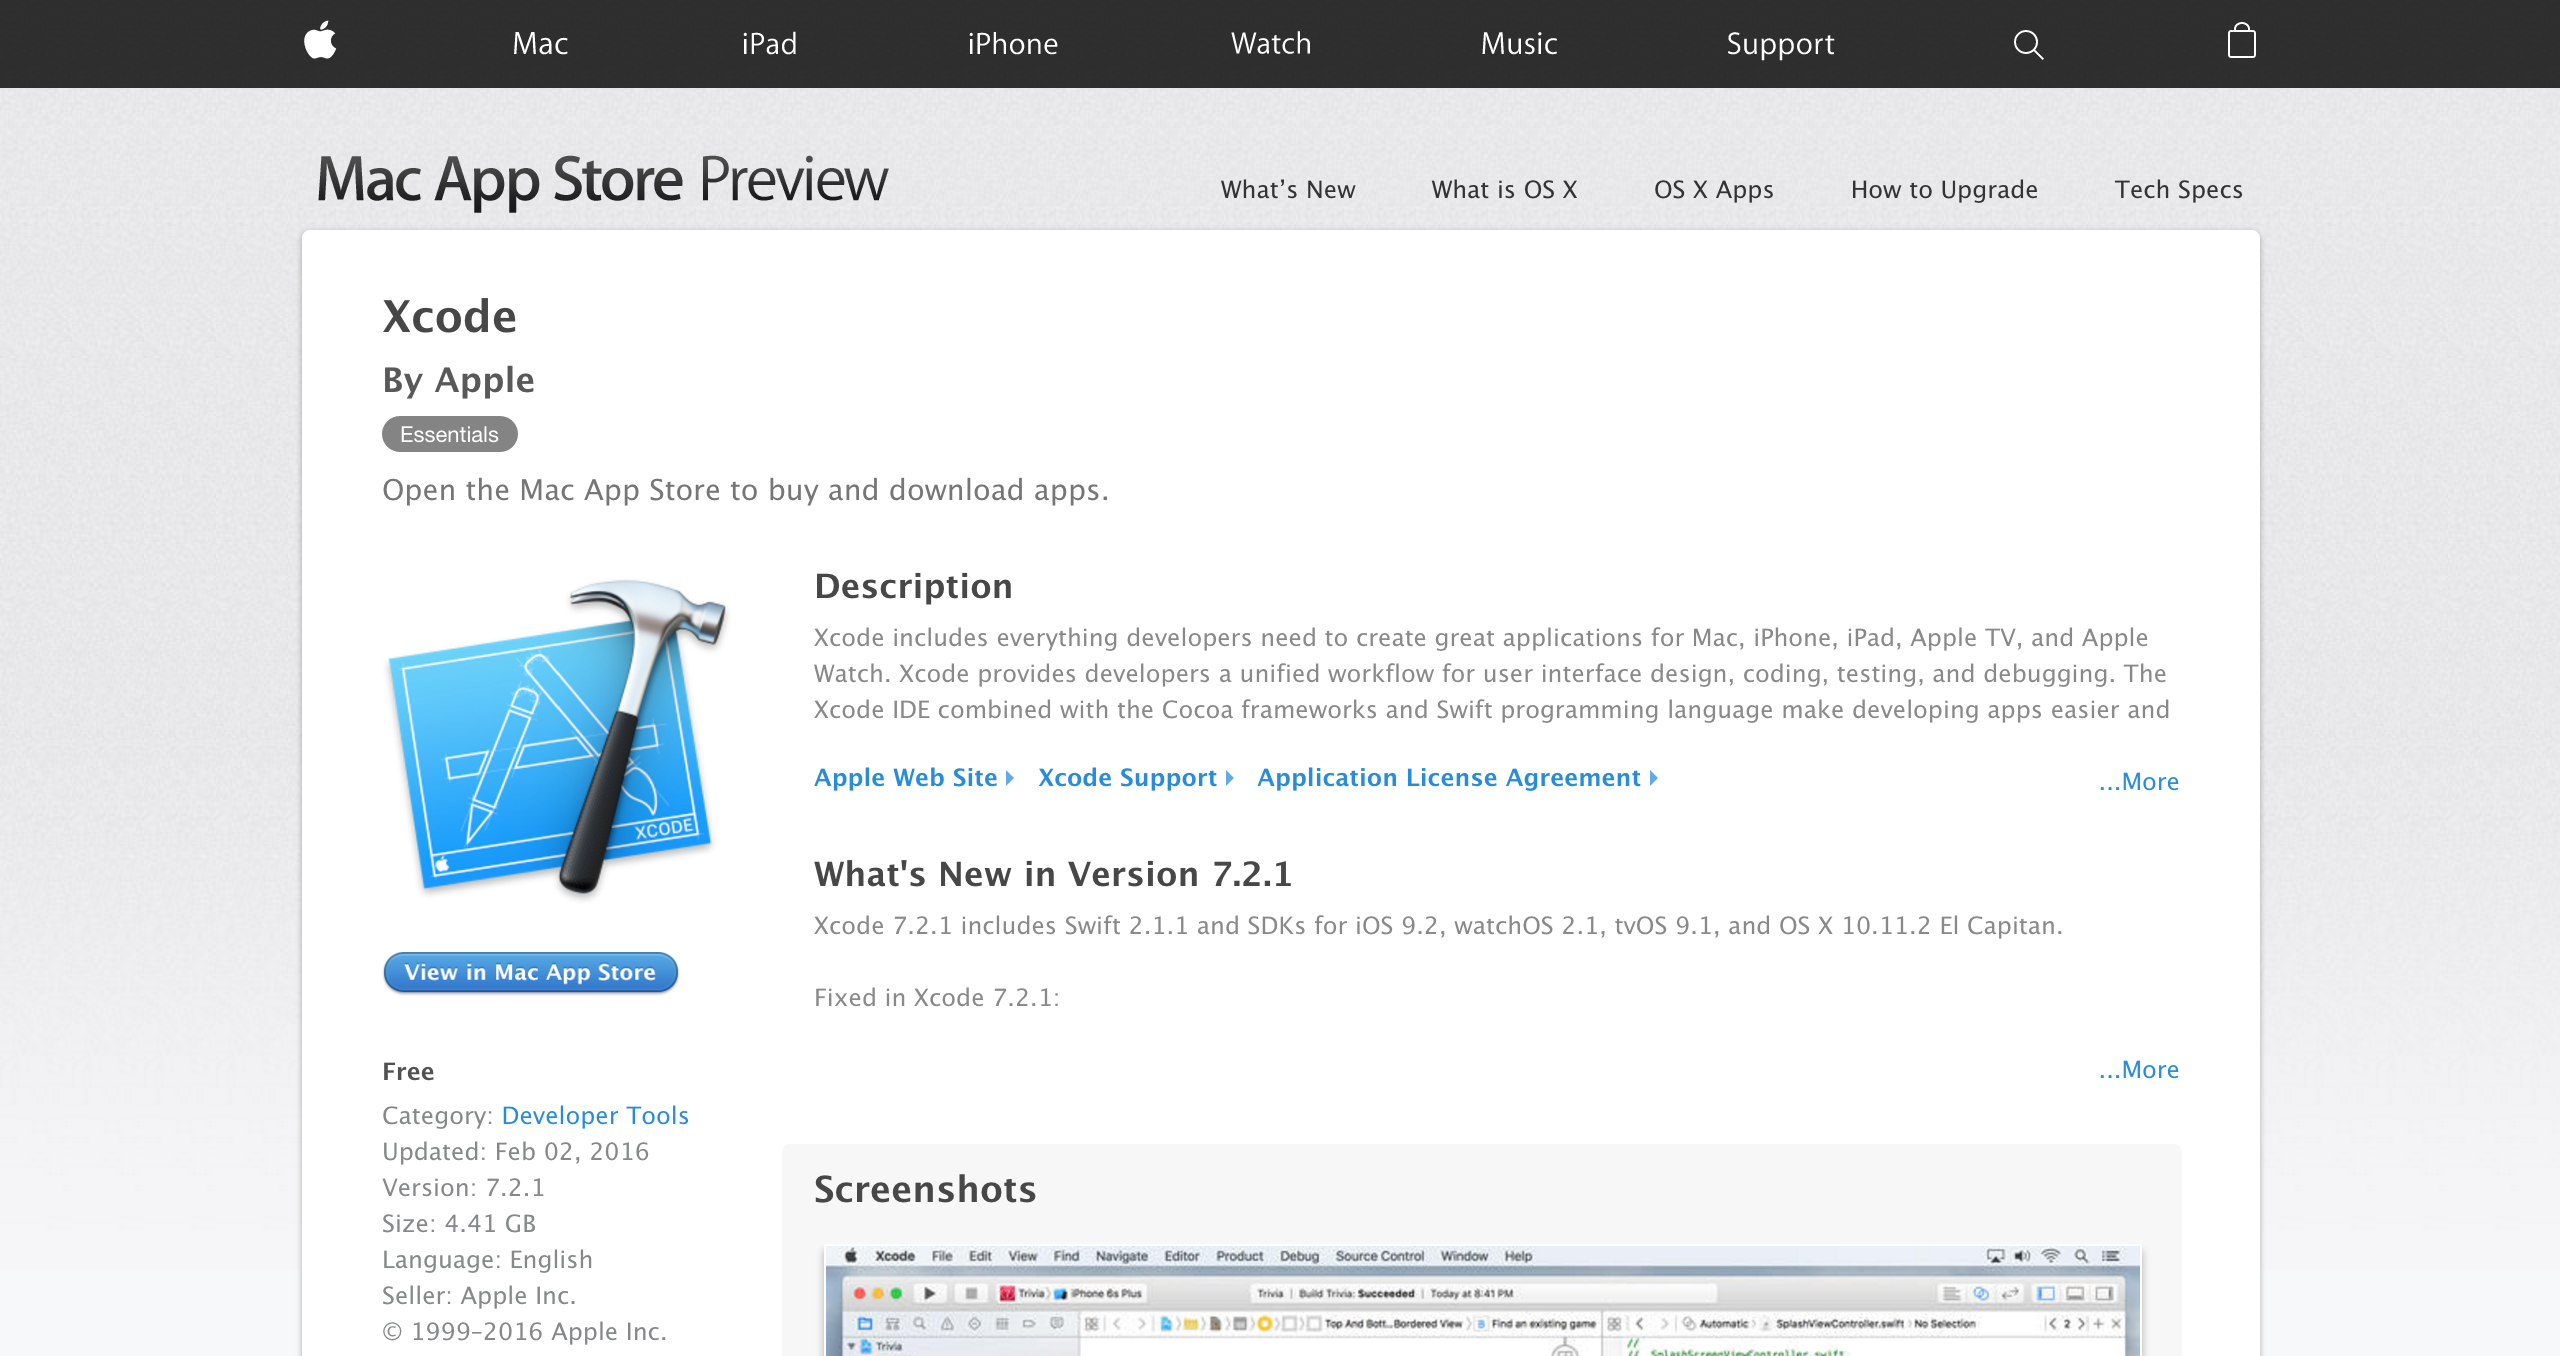 Xcode on the Mac App Store